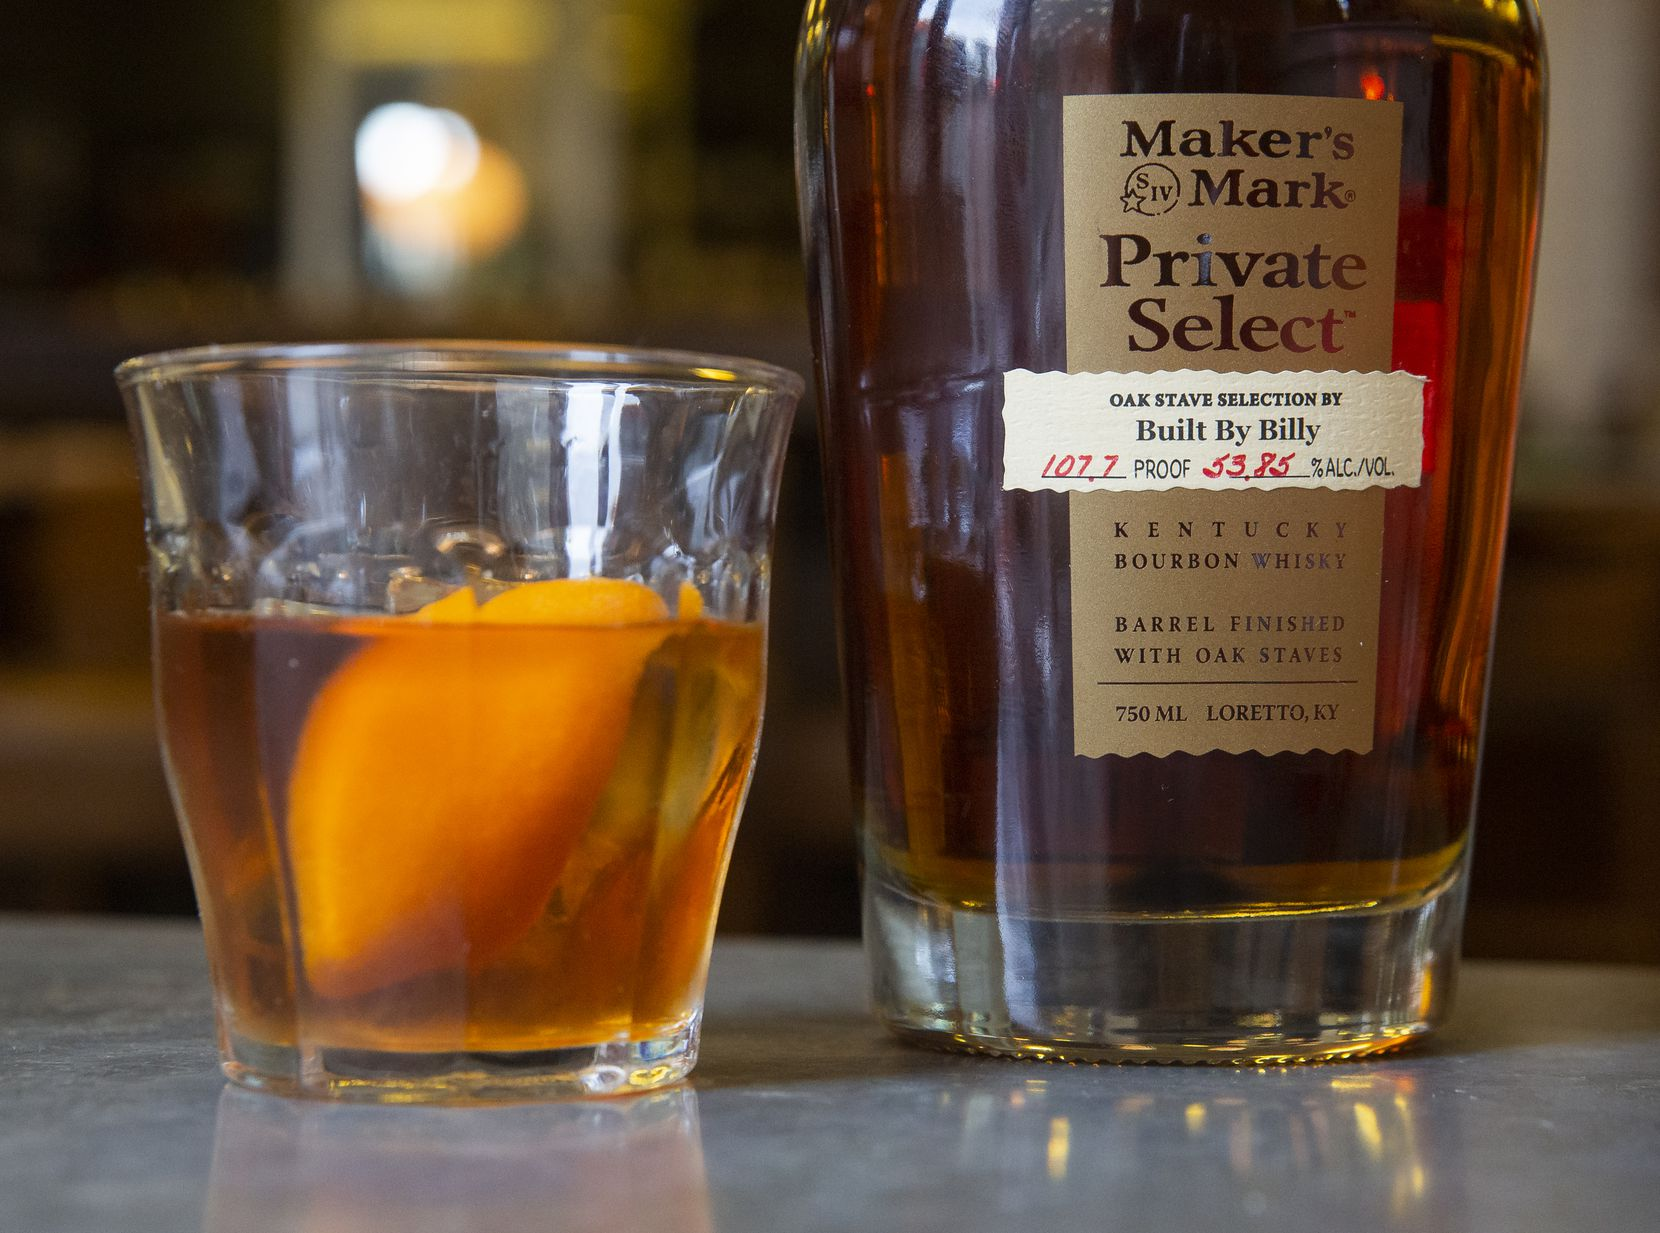 The Maker's Mark Private Select Old Fashioned at Billy Can Can